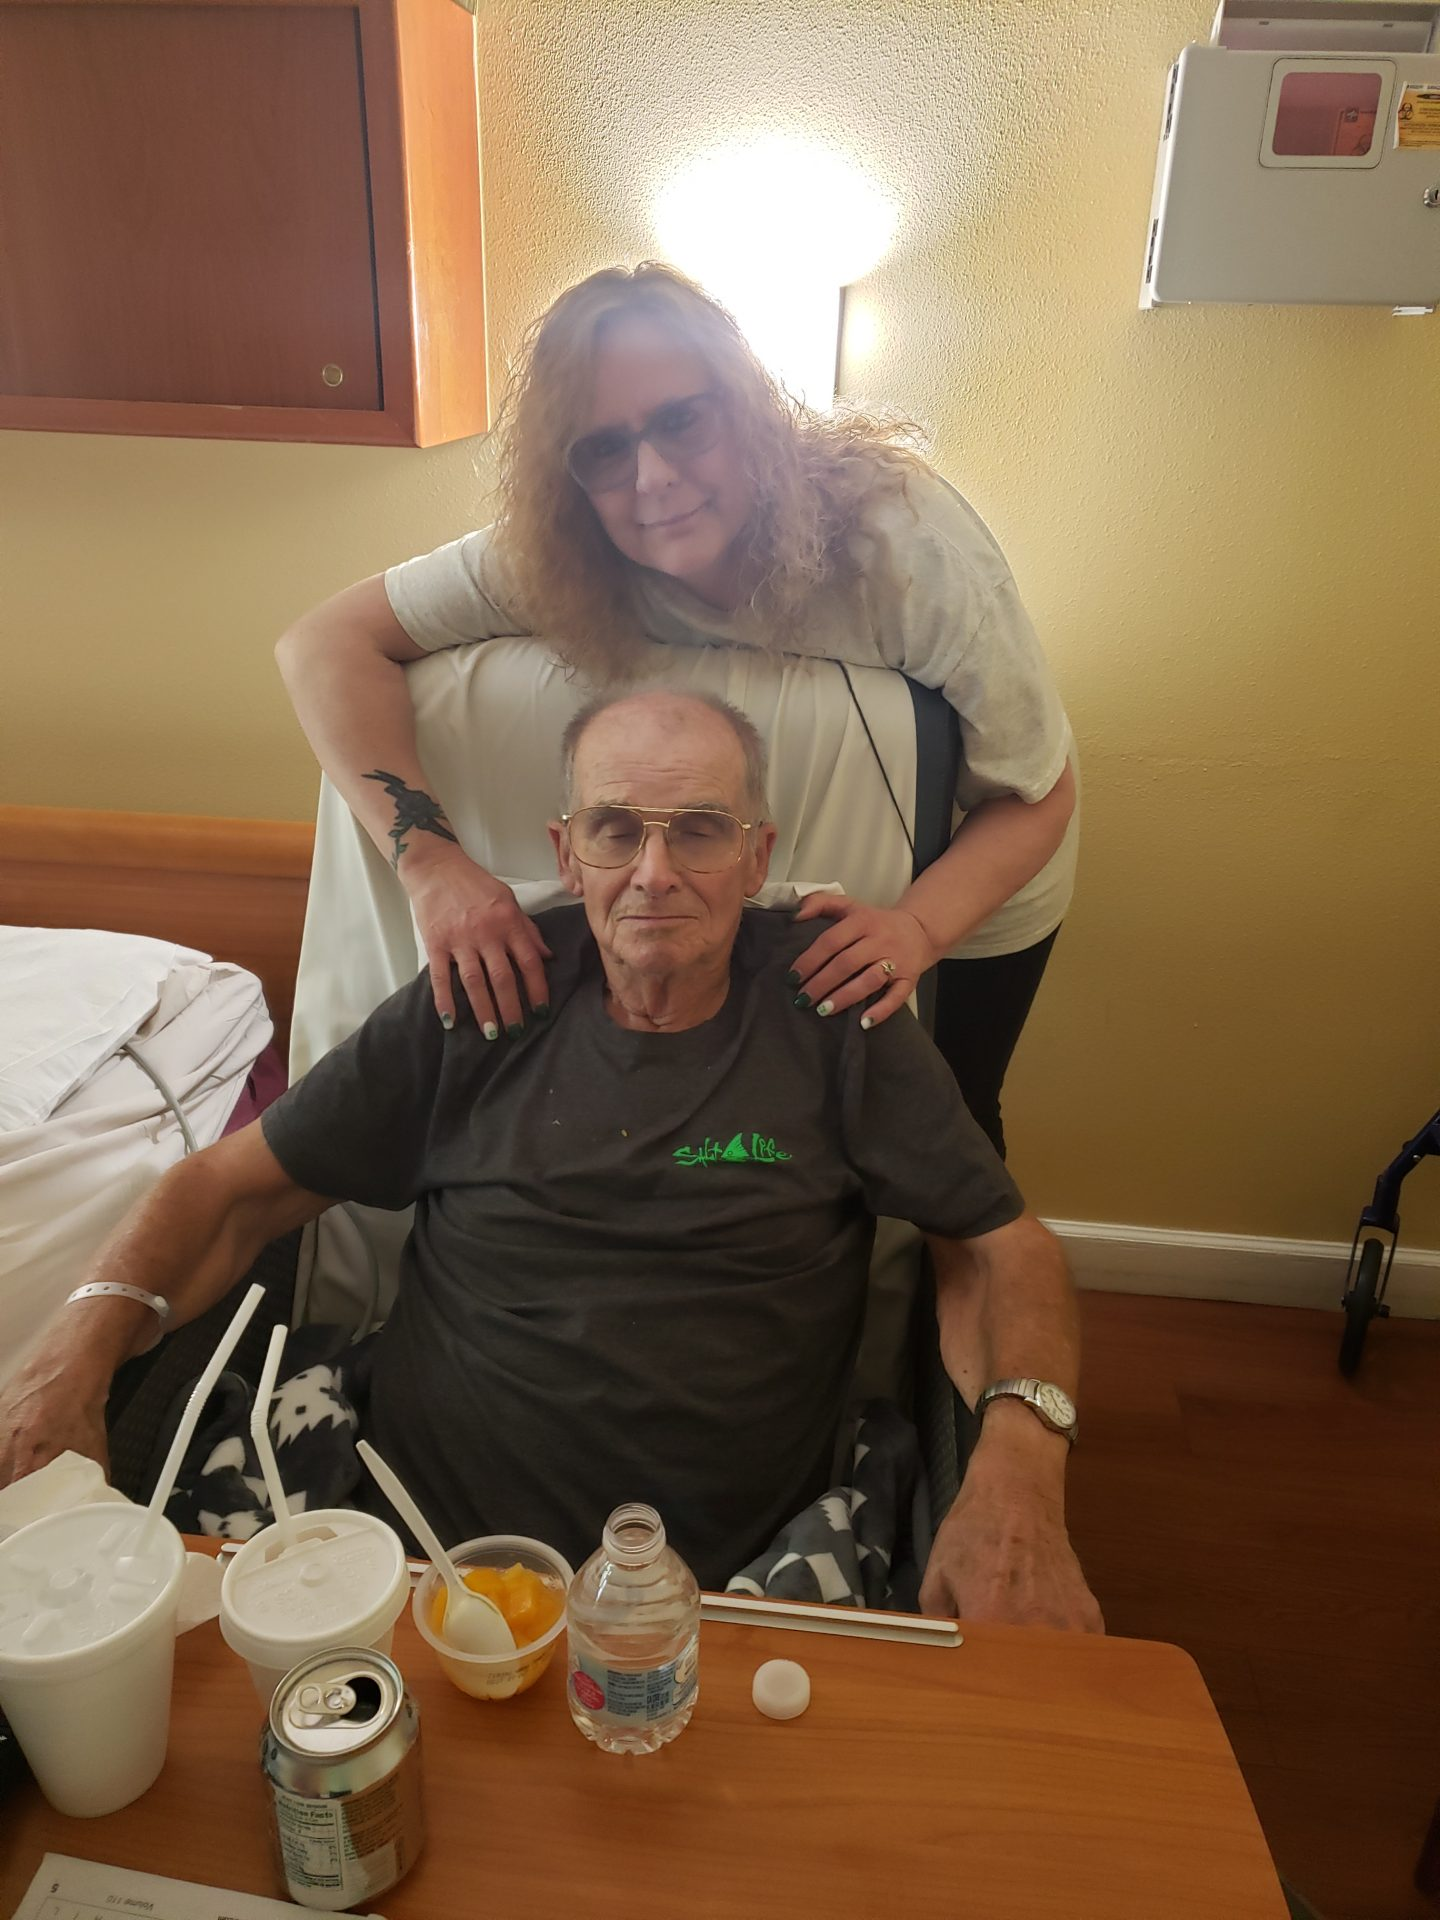 Daddy and I forever in my heart, I love you so much, until see each other again